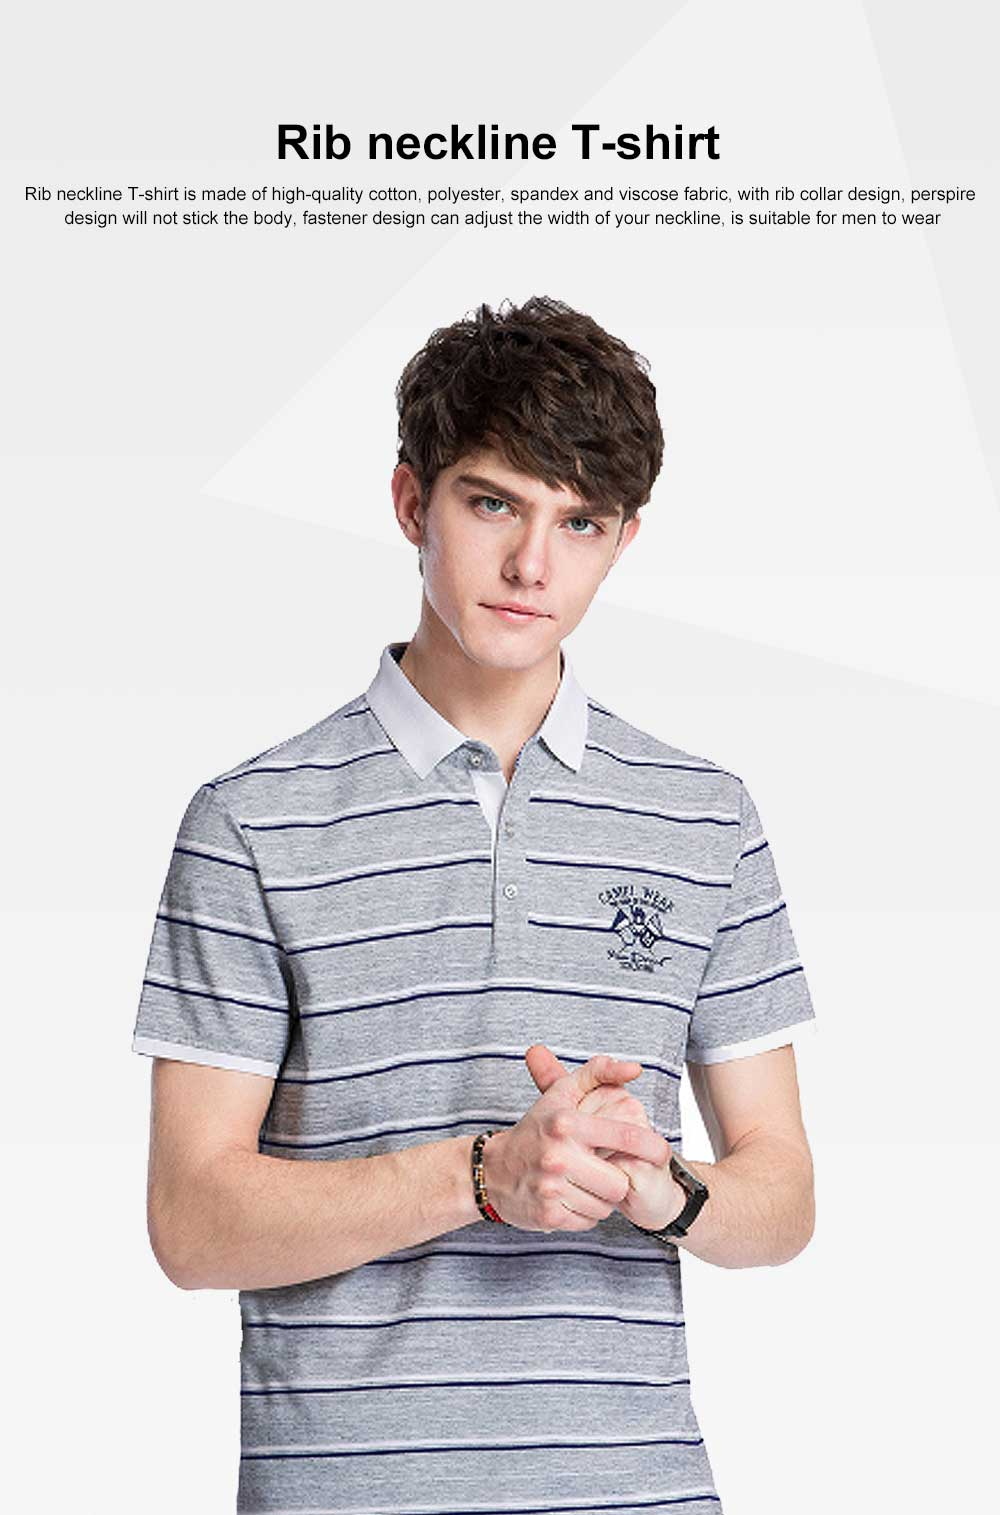 Rib Neckline Polo Shirt for Men, Perspire Fastener Design Shirt, Breathable Short-sleeve Polo Summer 2019 0